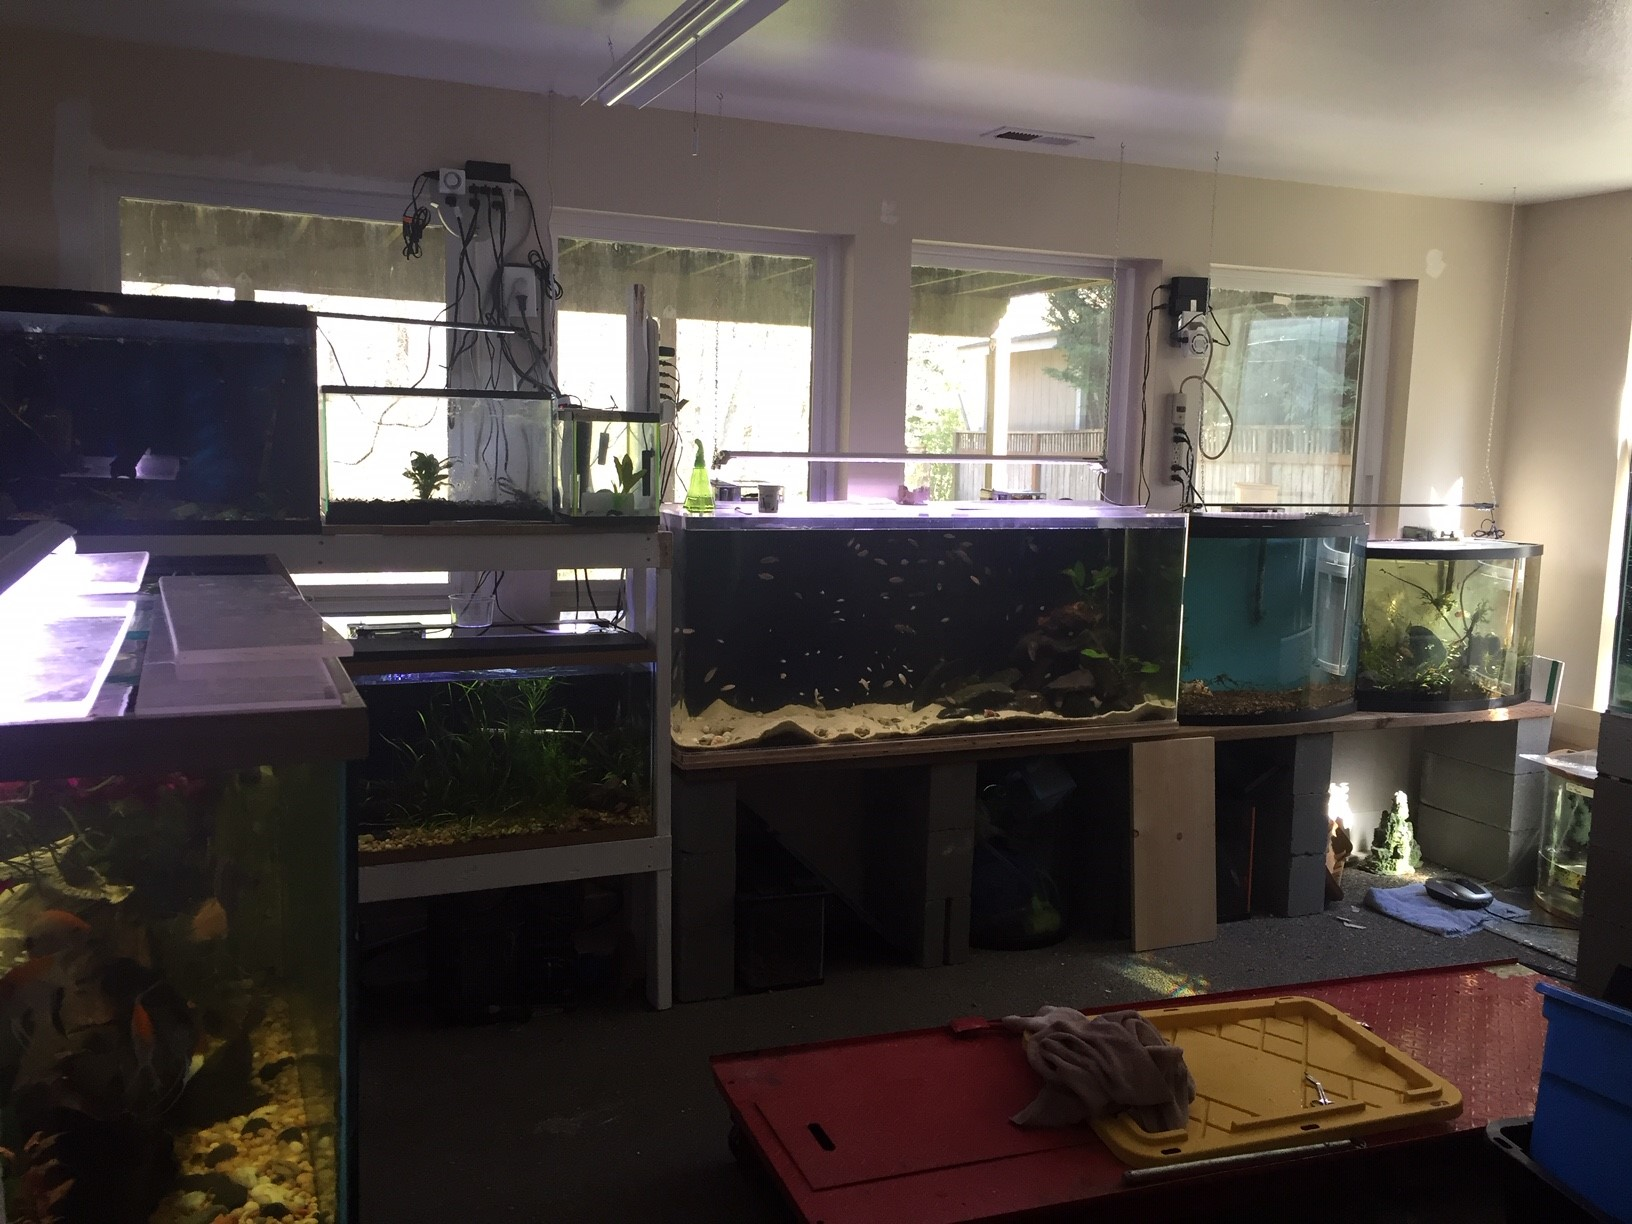 Fish_Room_Overview.jpg